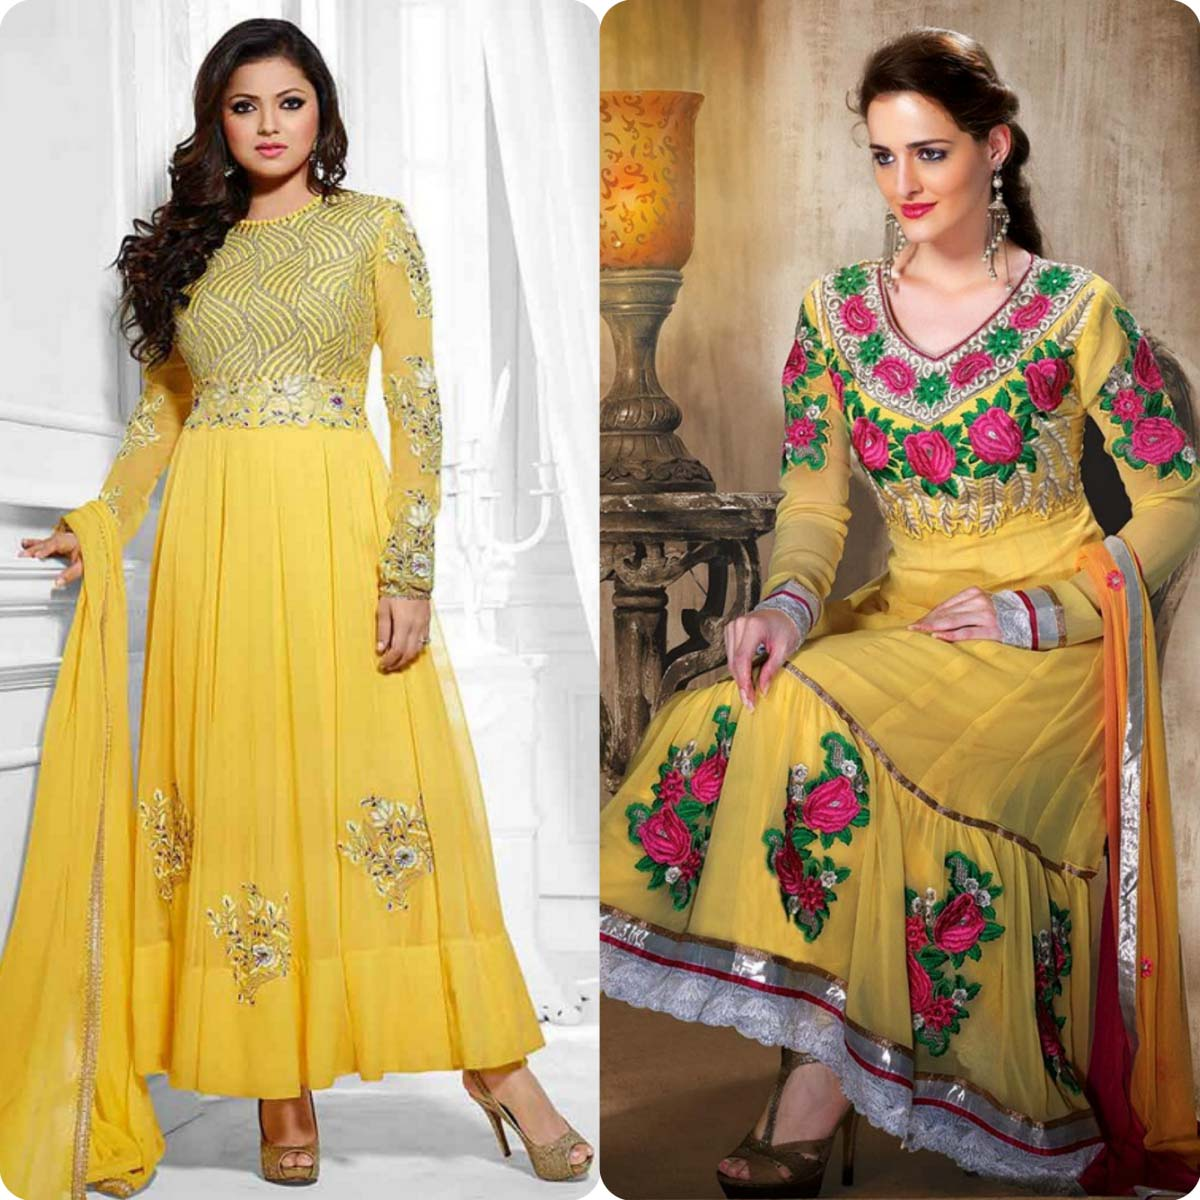 Indian Stylish Umbrella Frock and Churidar Dresses for Girls 2016-2017 (7)